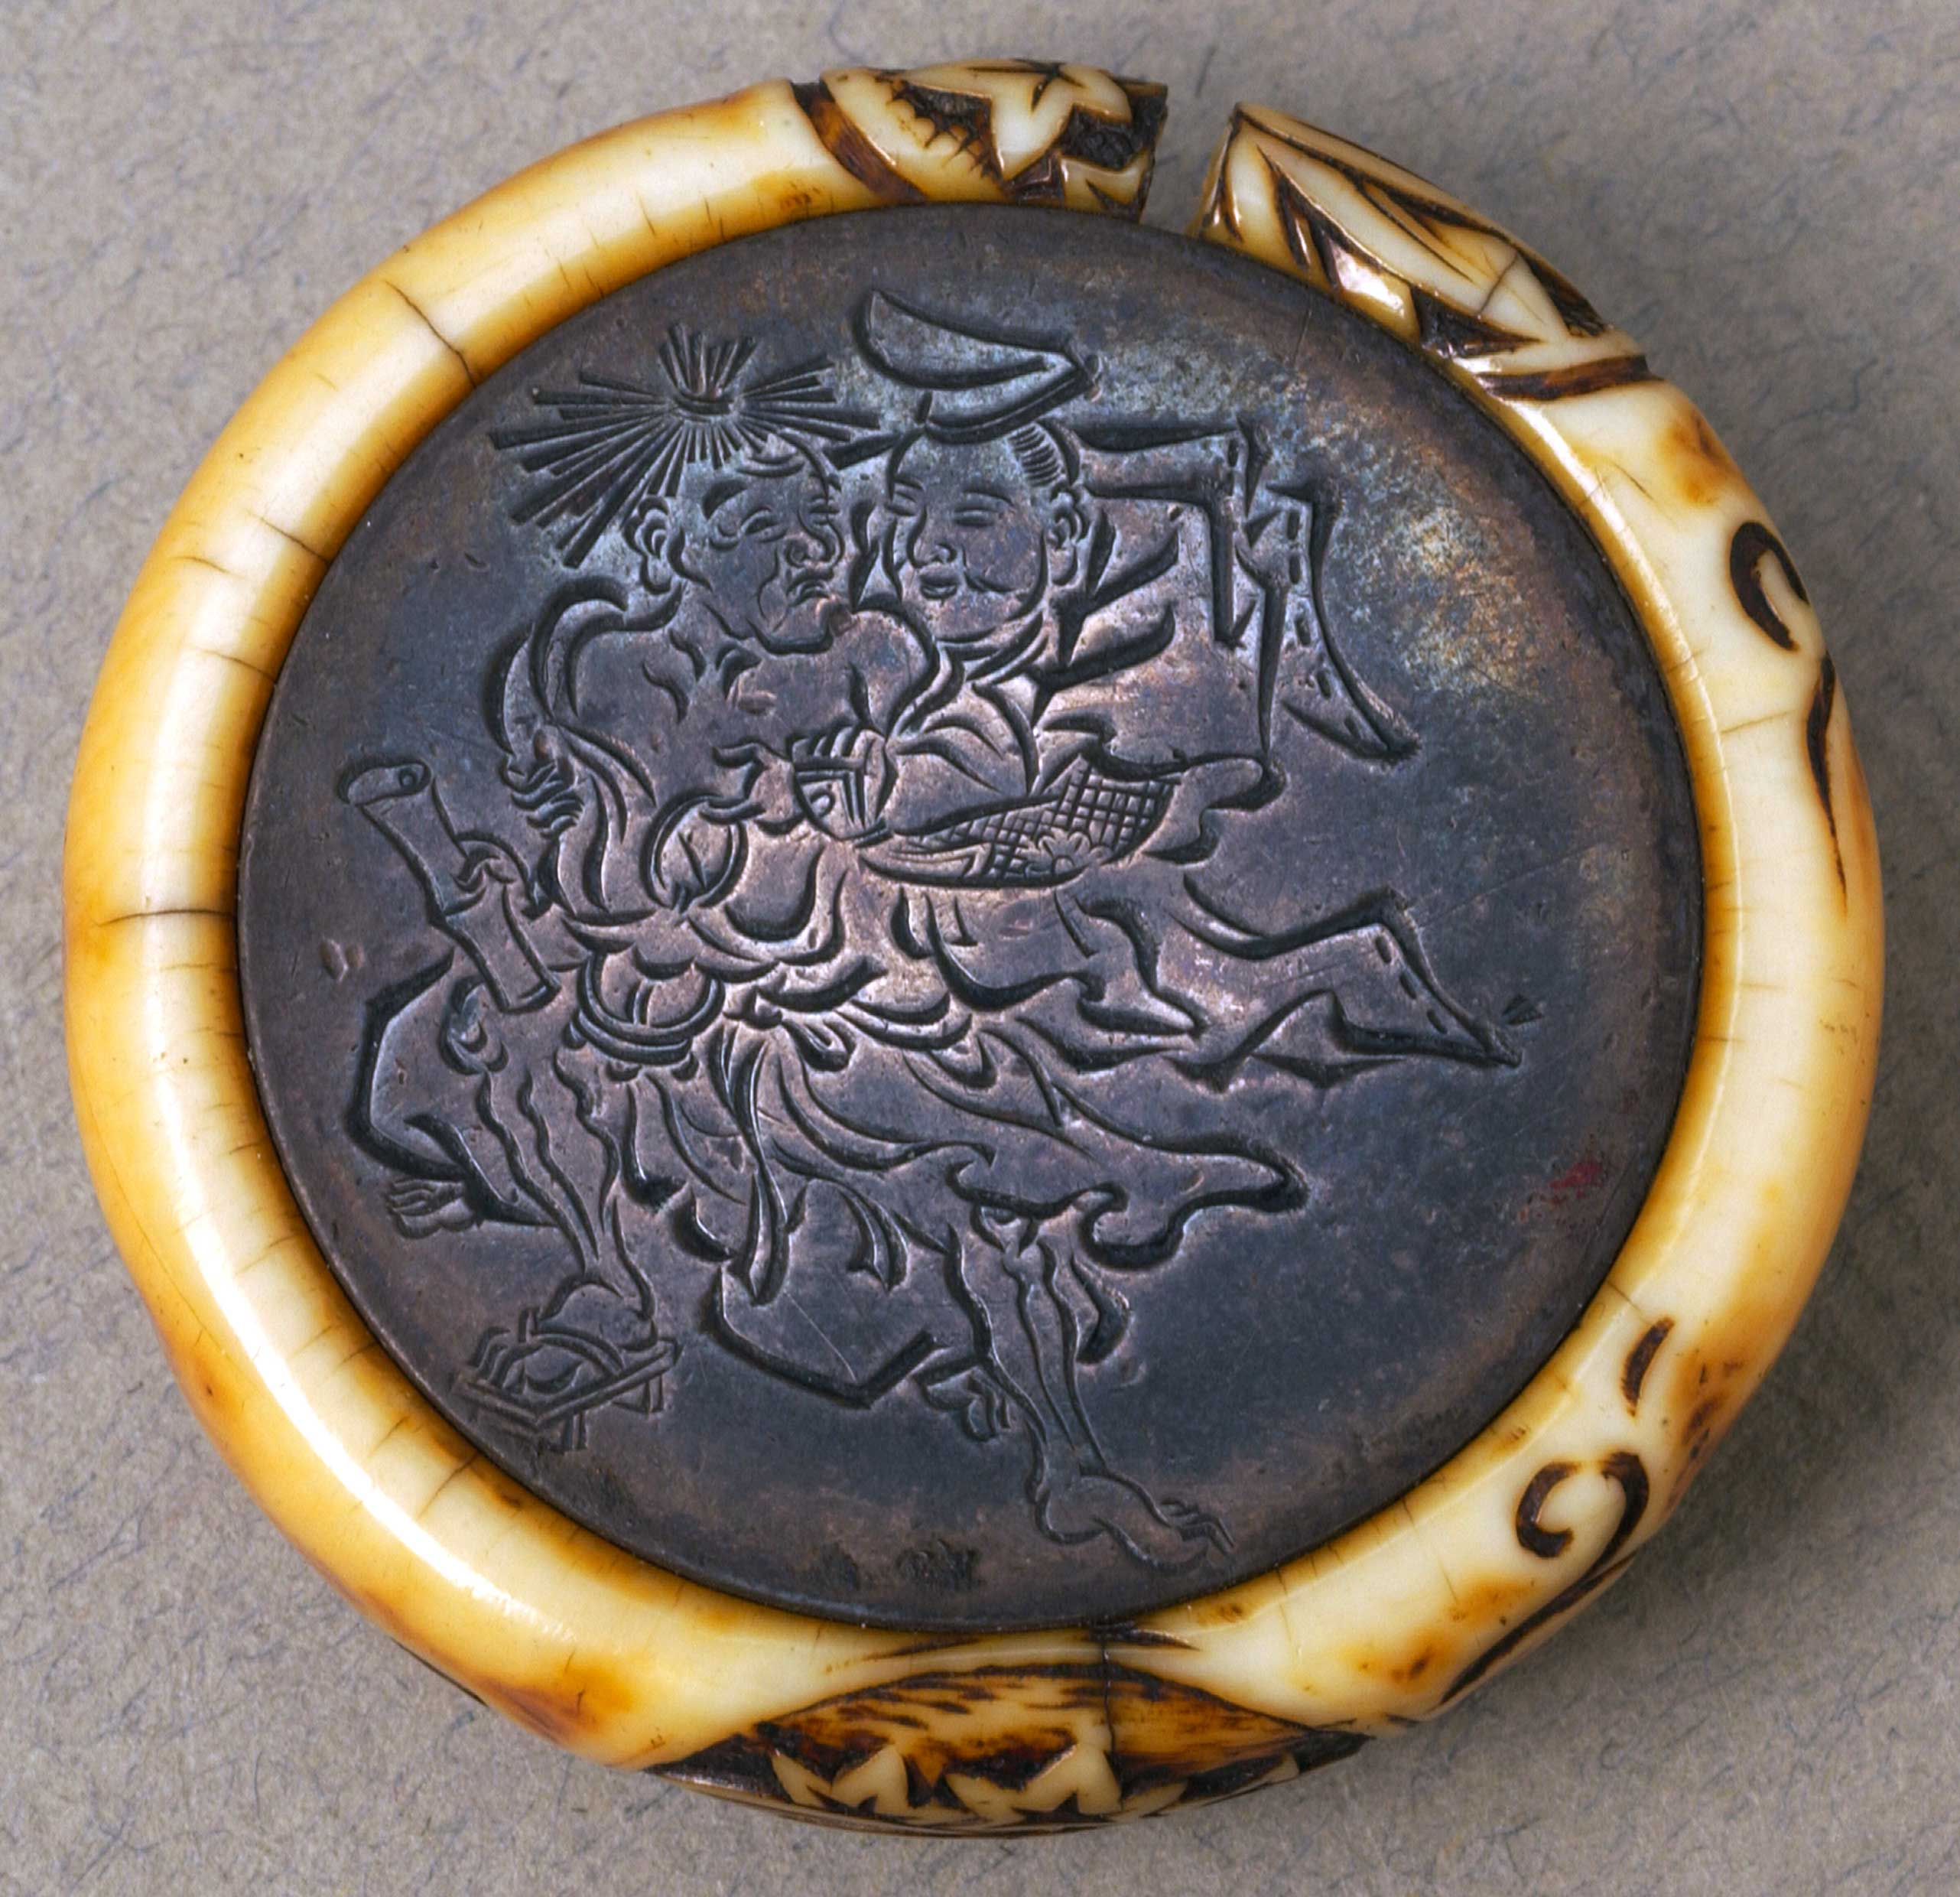 Netsuke inscribed with leaves and flowers